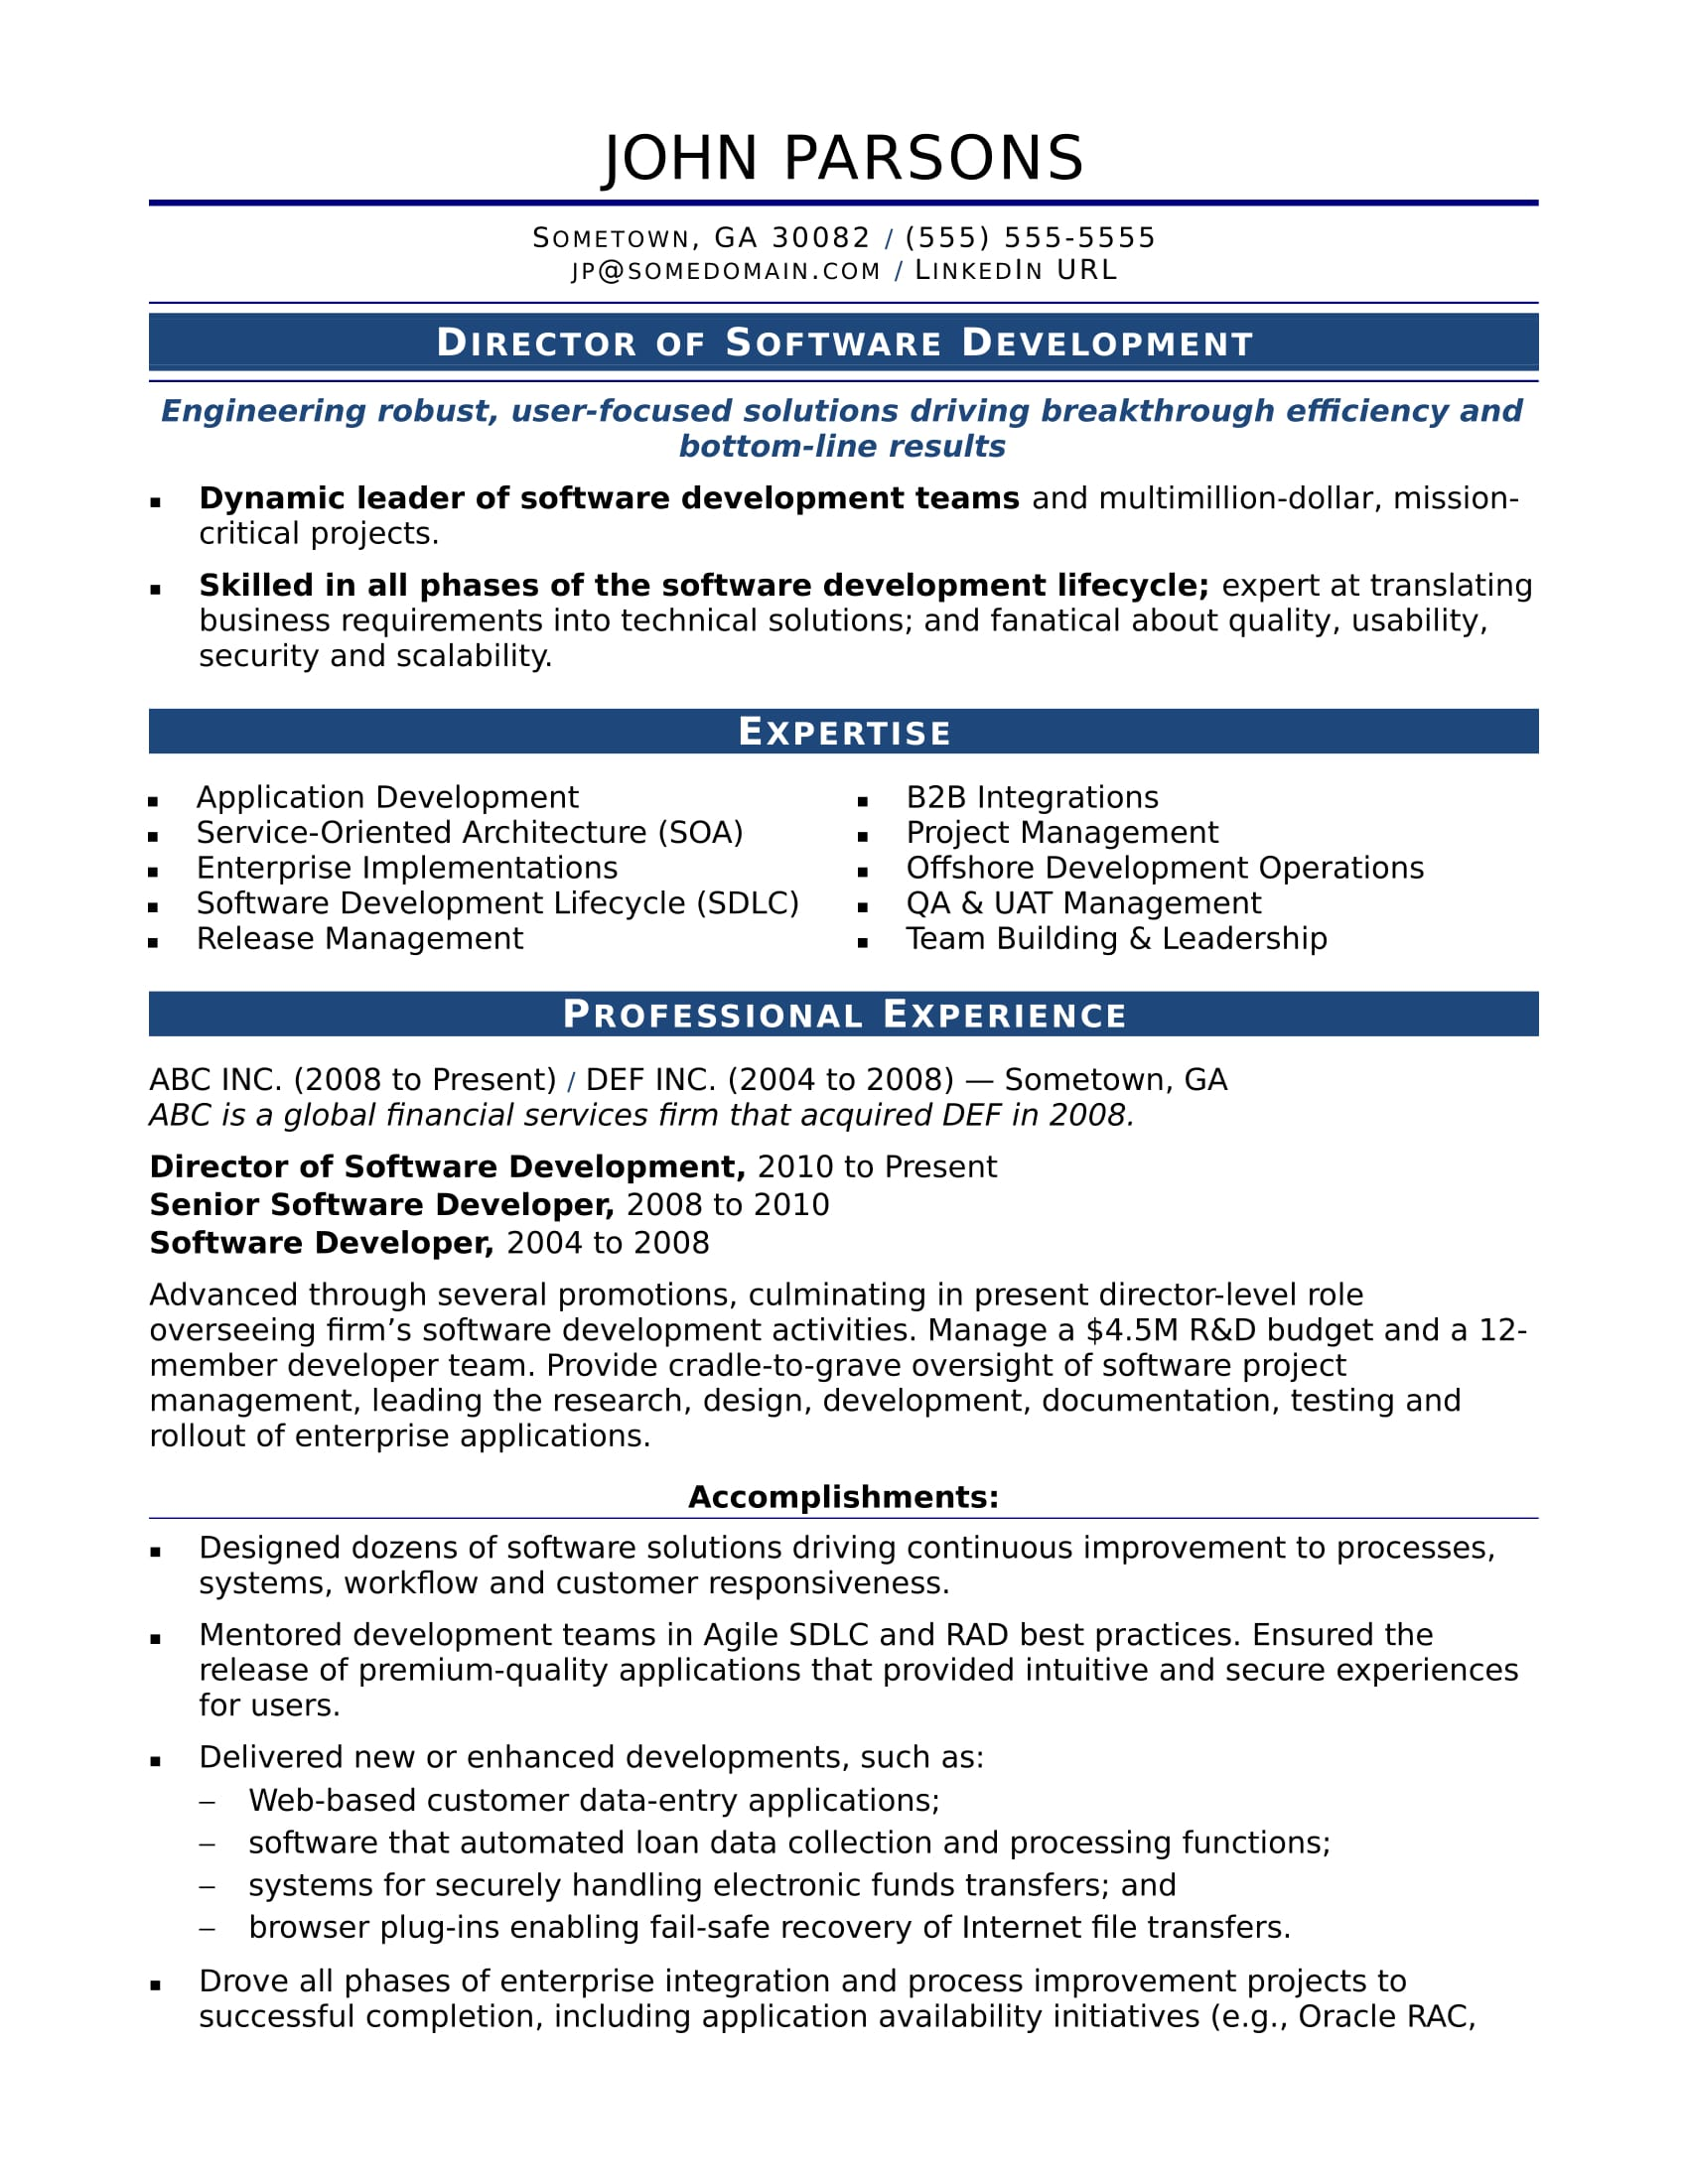 Sample Resume for an Experienced IT Developer | Monster com